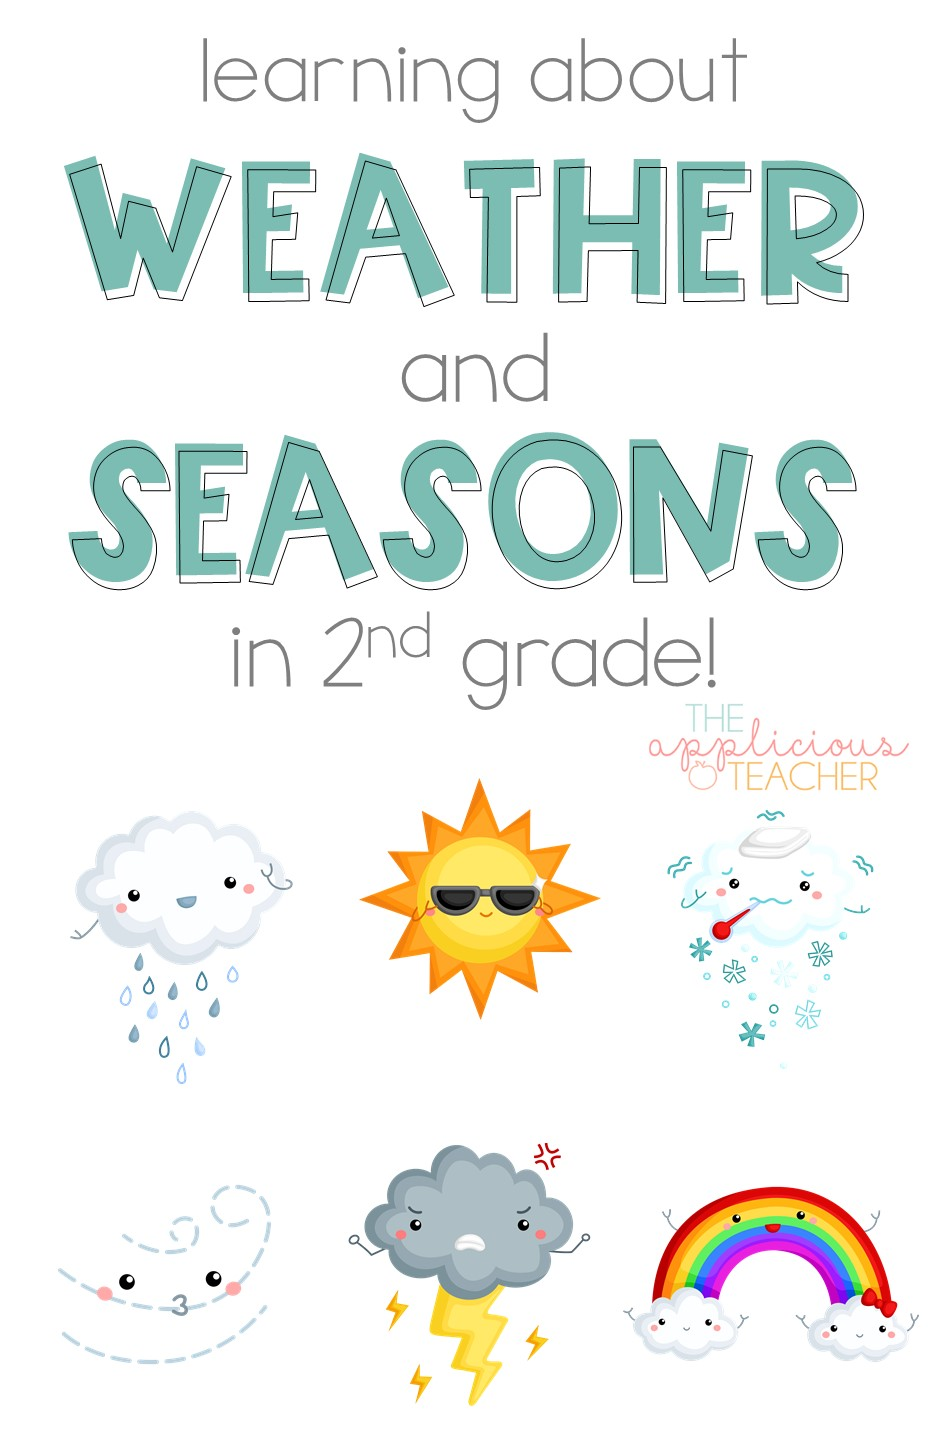 learning about weather and seasons in 2nd grade. Great post with so many great activities for teaching weather and the seasons in 2nd grade